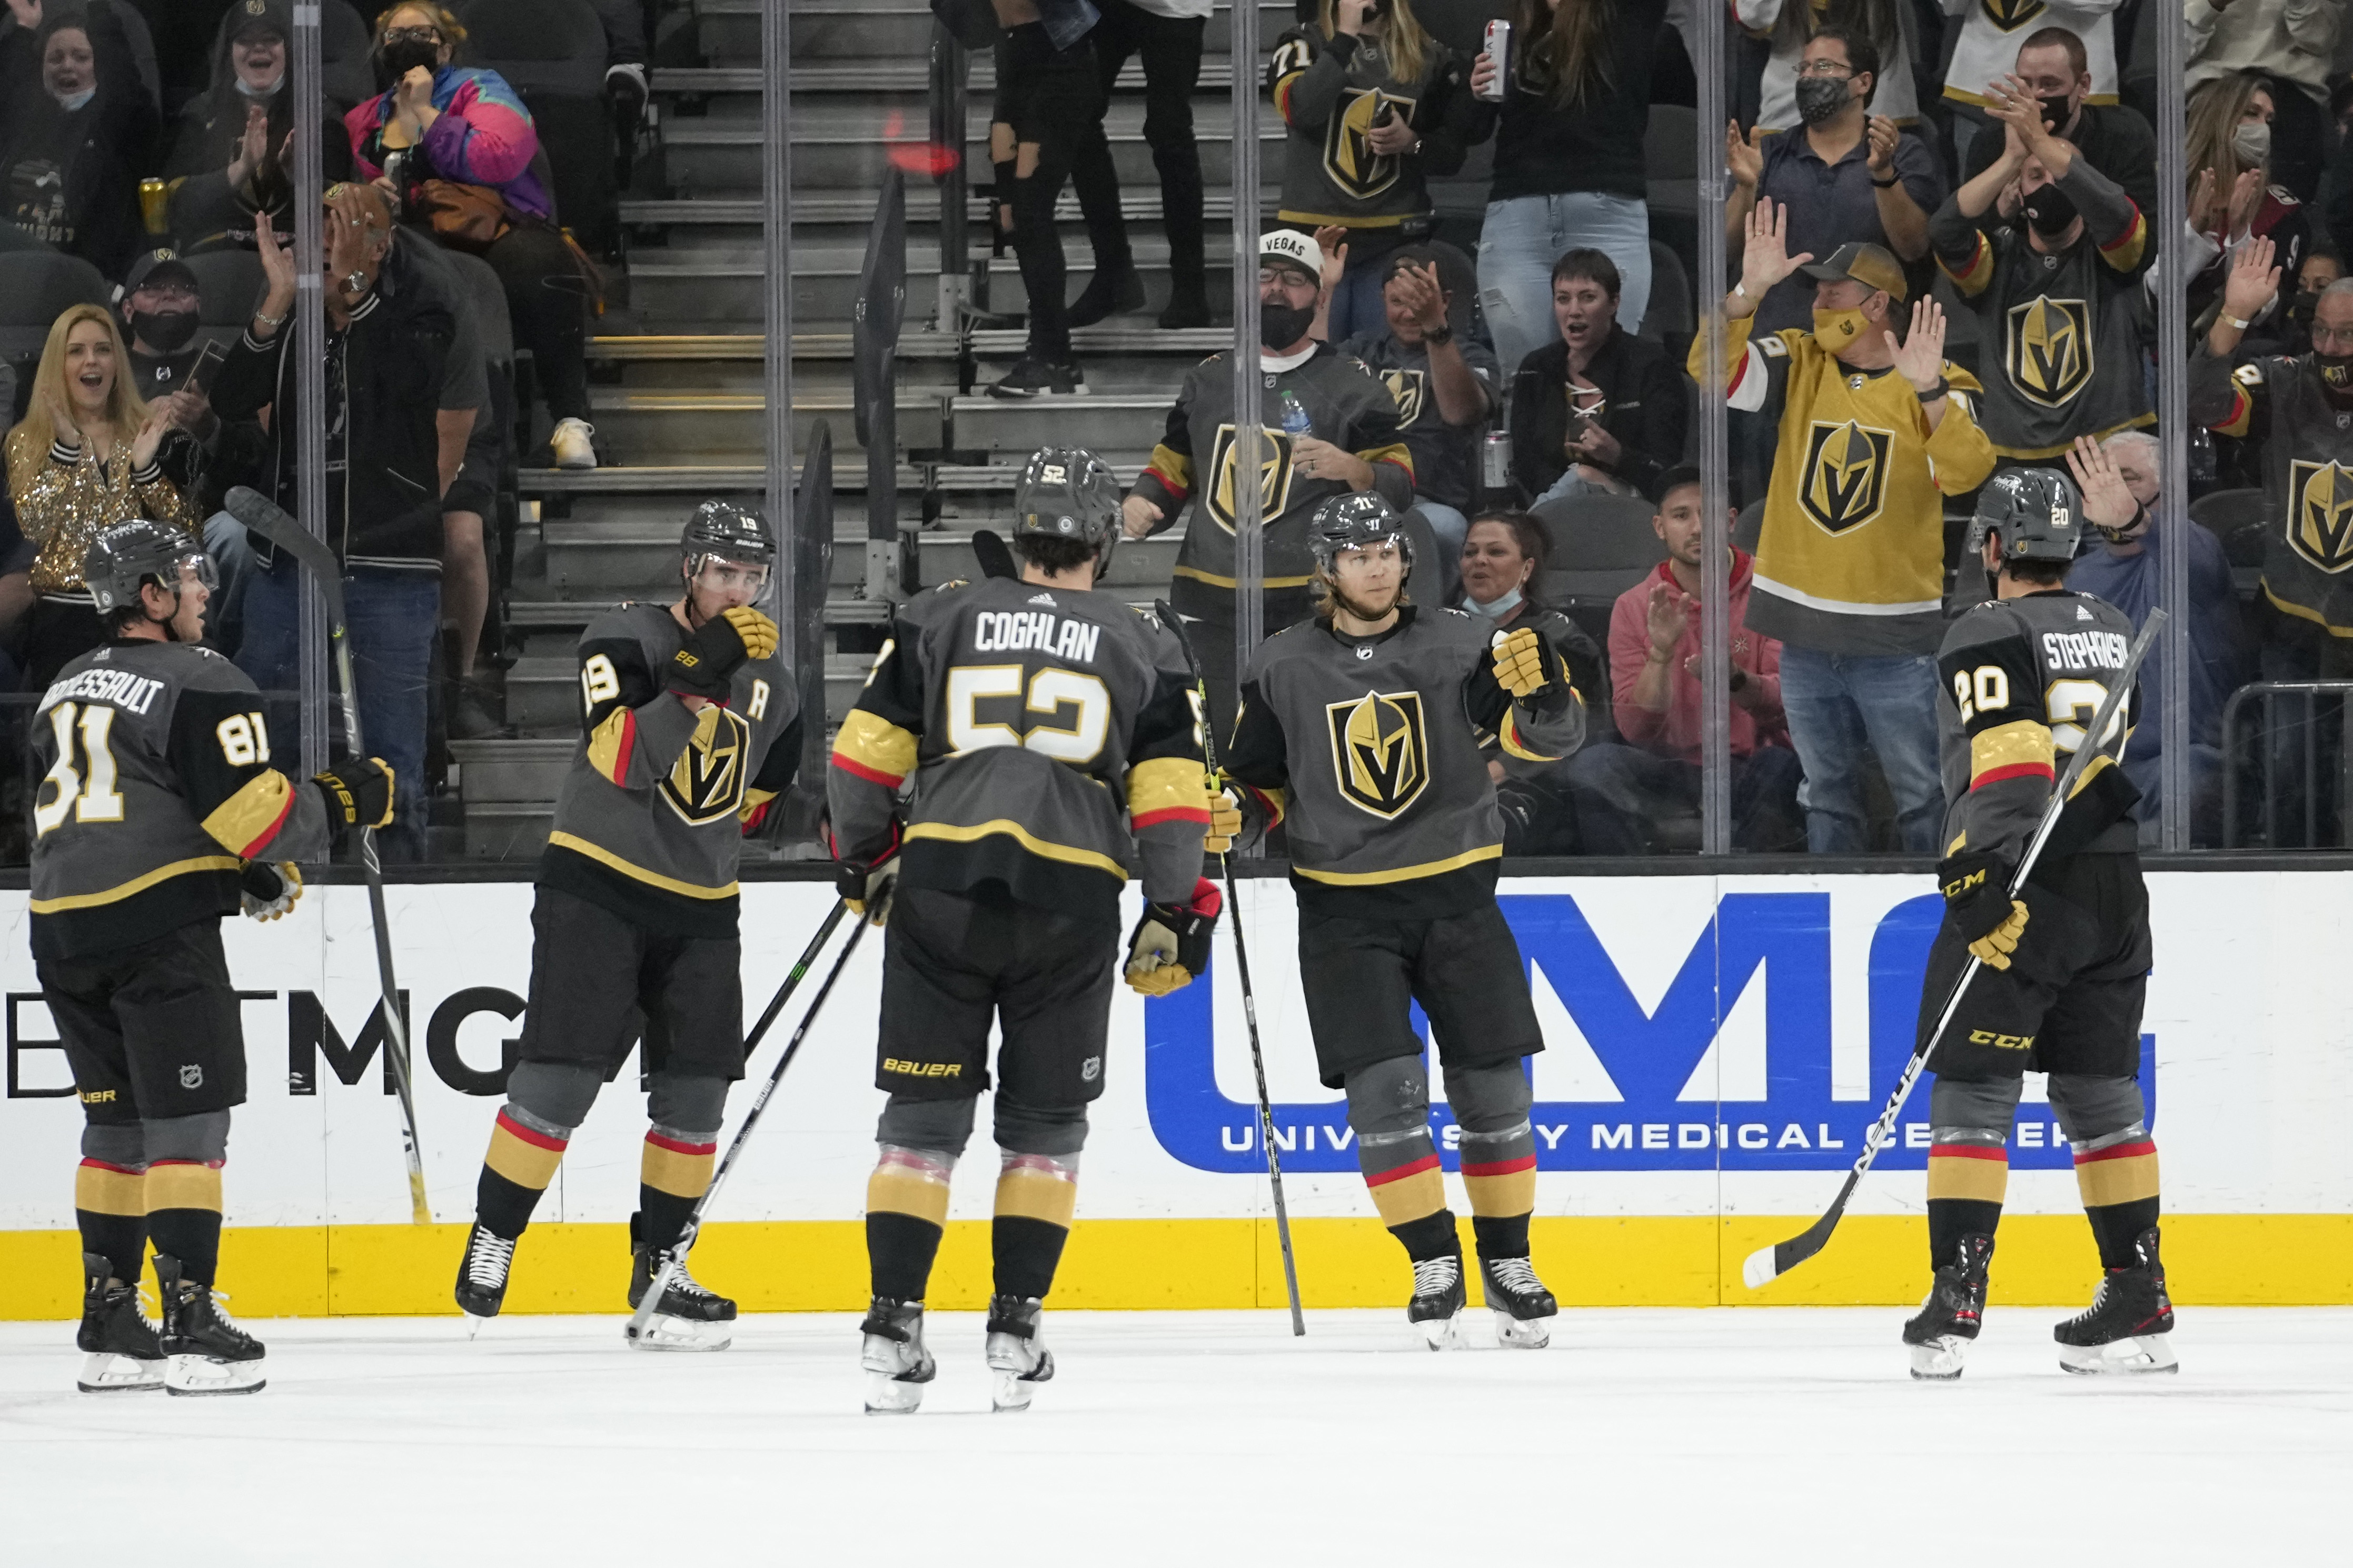 William Karlsson (71) celebrates a goal on the ice with 4 of his teammates.